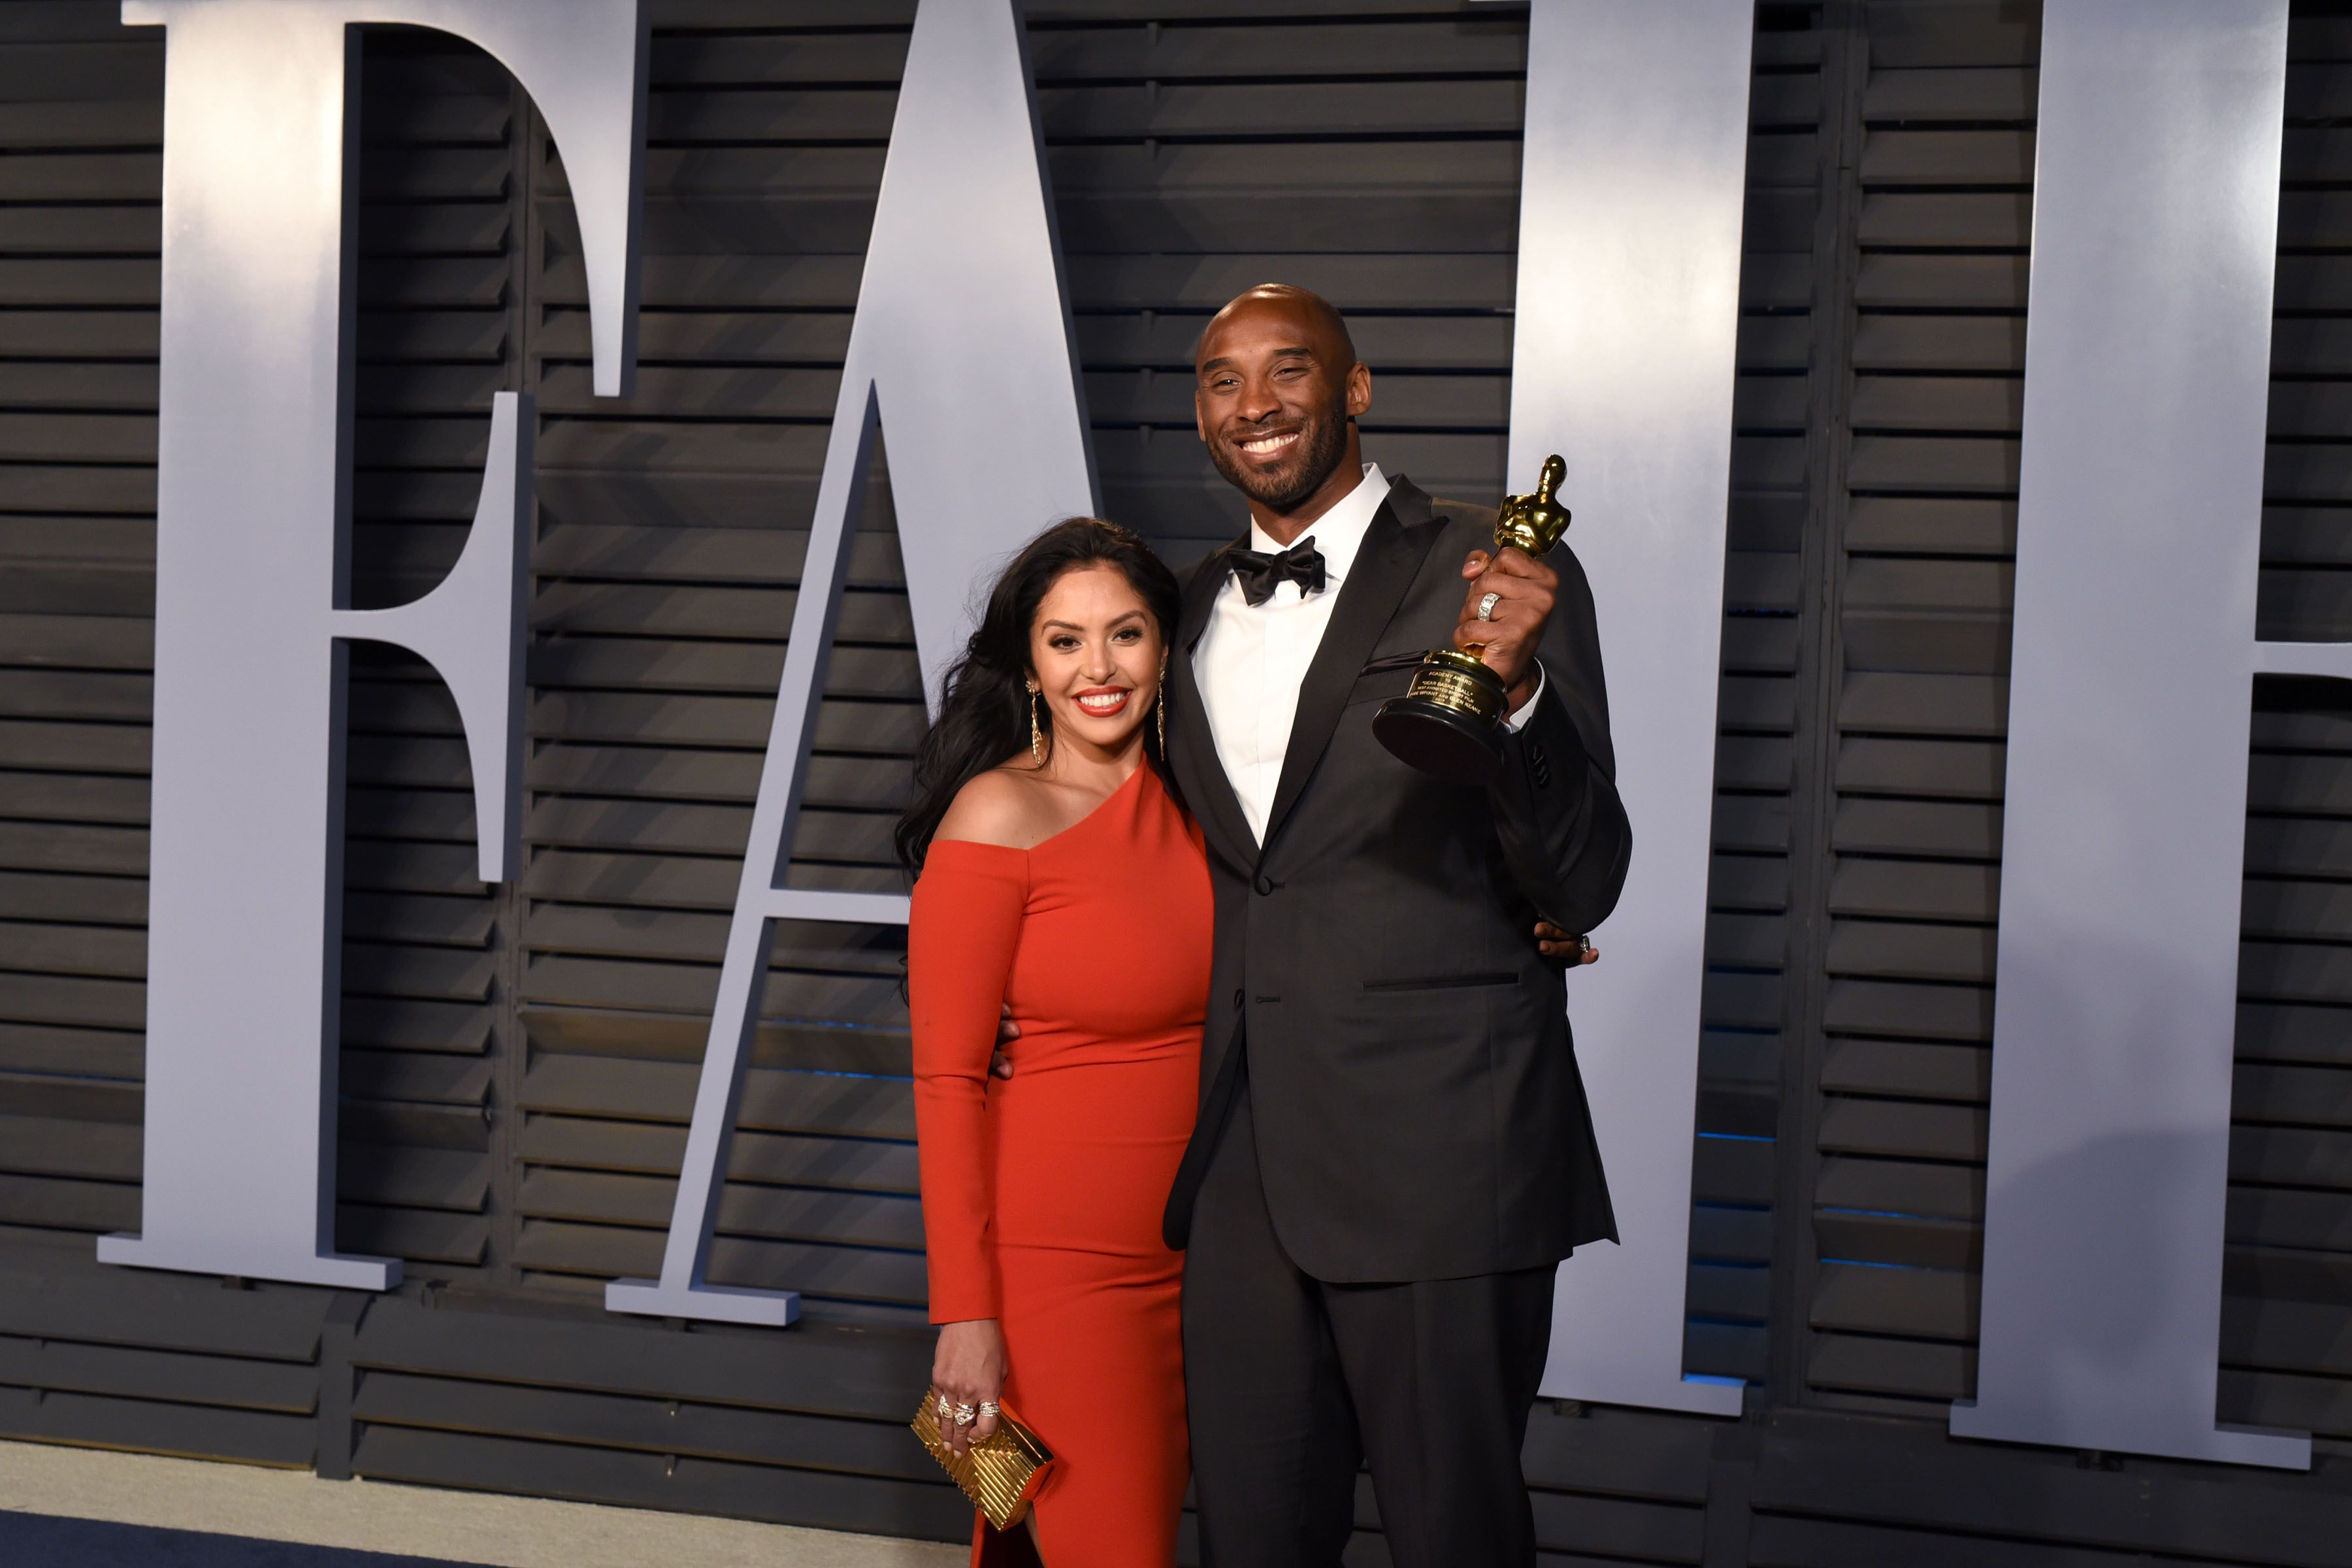 Vanessa Bryant and Kobe Bryant during the 2018 Vanity Fair Oscar Party Hosted By Radhika Jones - Arrivals at Wallis Annenberg Center for the Performing Arts on March 4, 2018 in Beverly Hills, CA. | Source: Getty Images